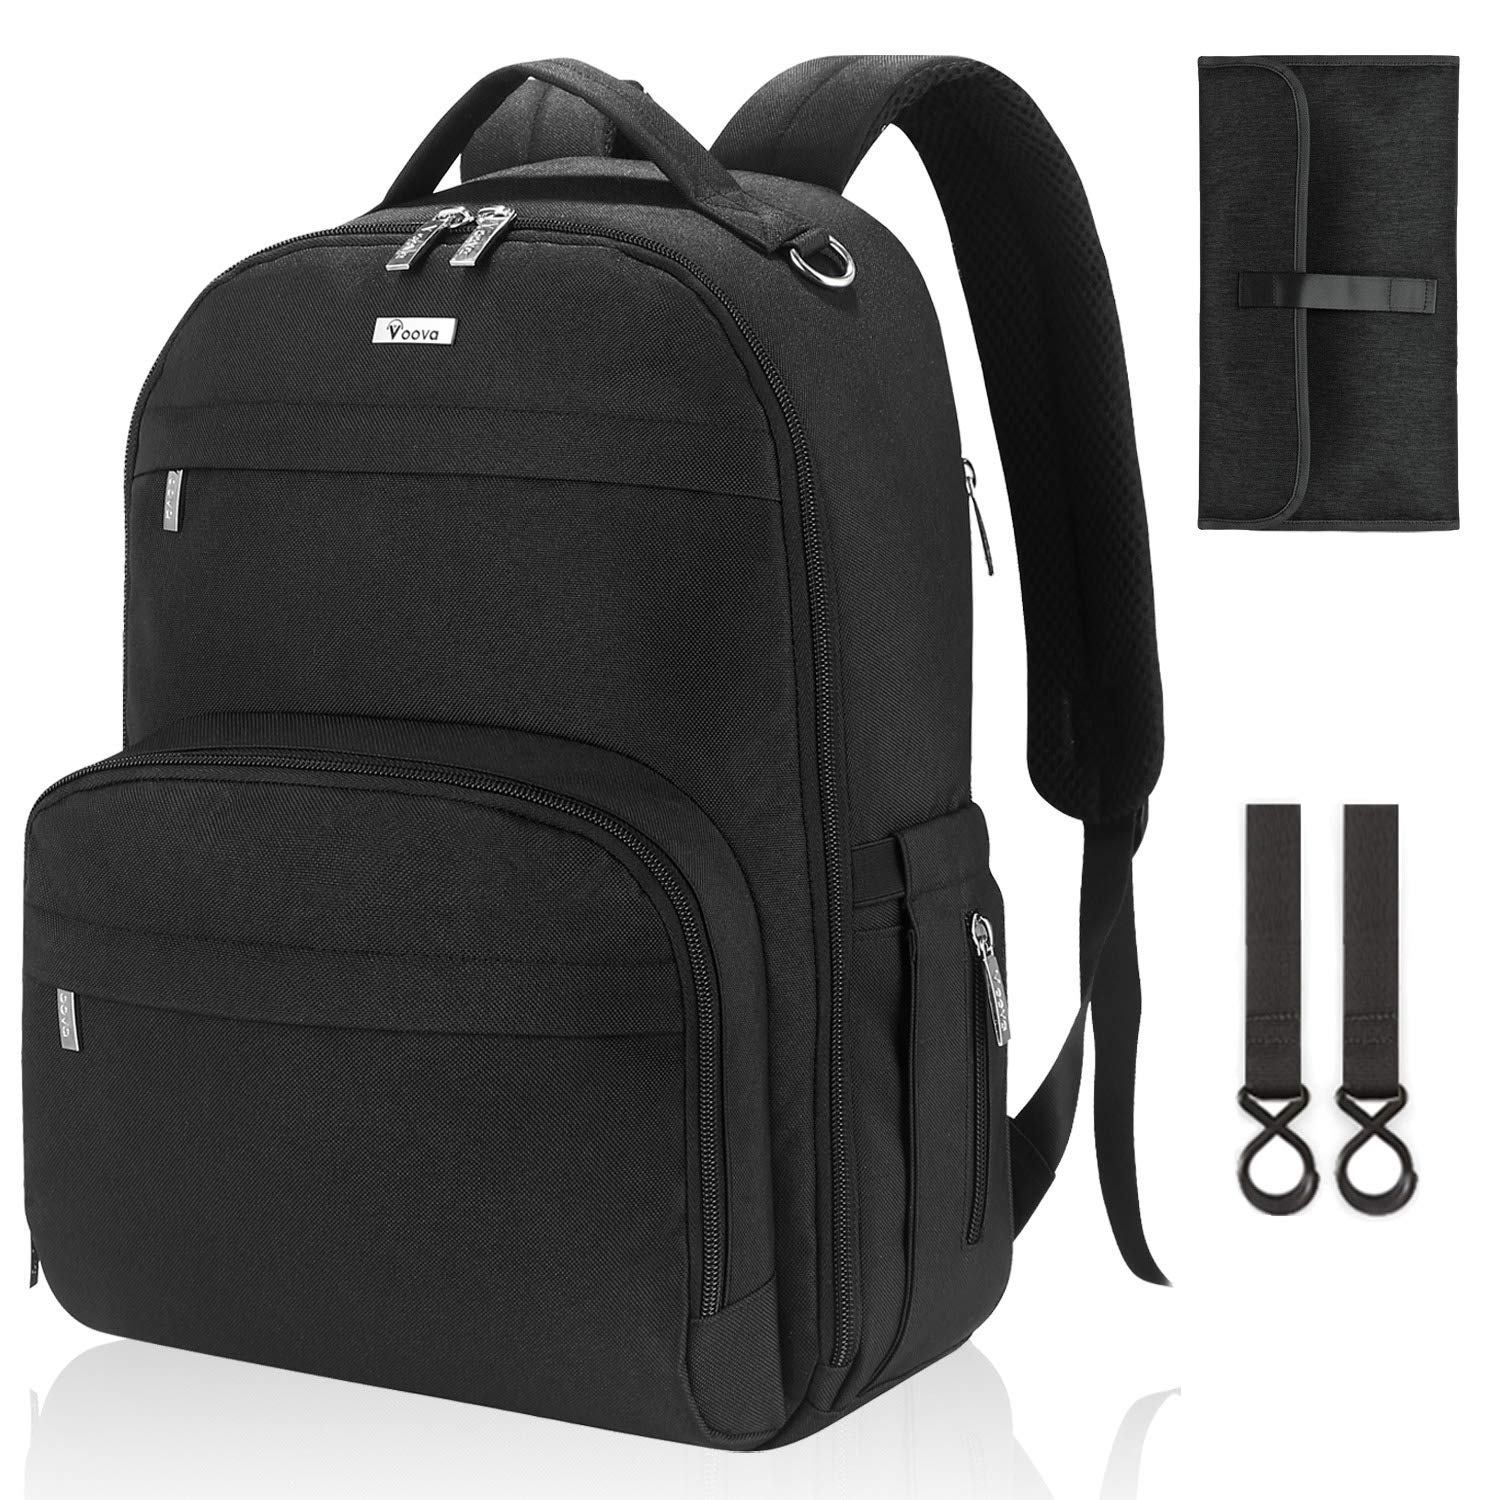 Voova Diaper Bag Backpack, Multifunction Travel Back Pack Maternity Baby Nappy Changing Bags with Changing Pad & Stroller Straps, Large Capacity,Waterproof and Stylish for Mom and Dad, Black